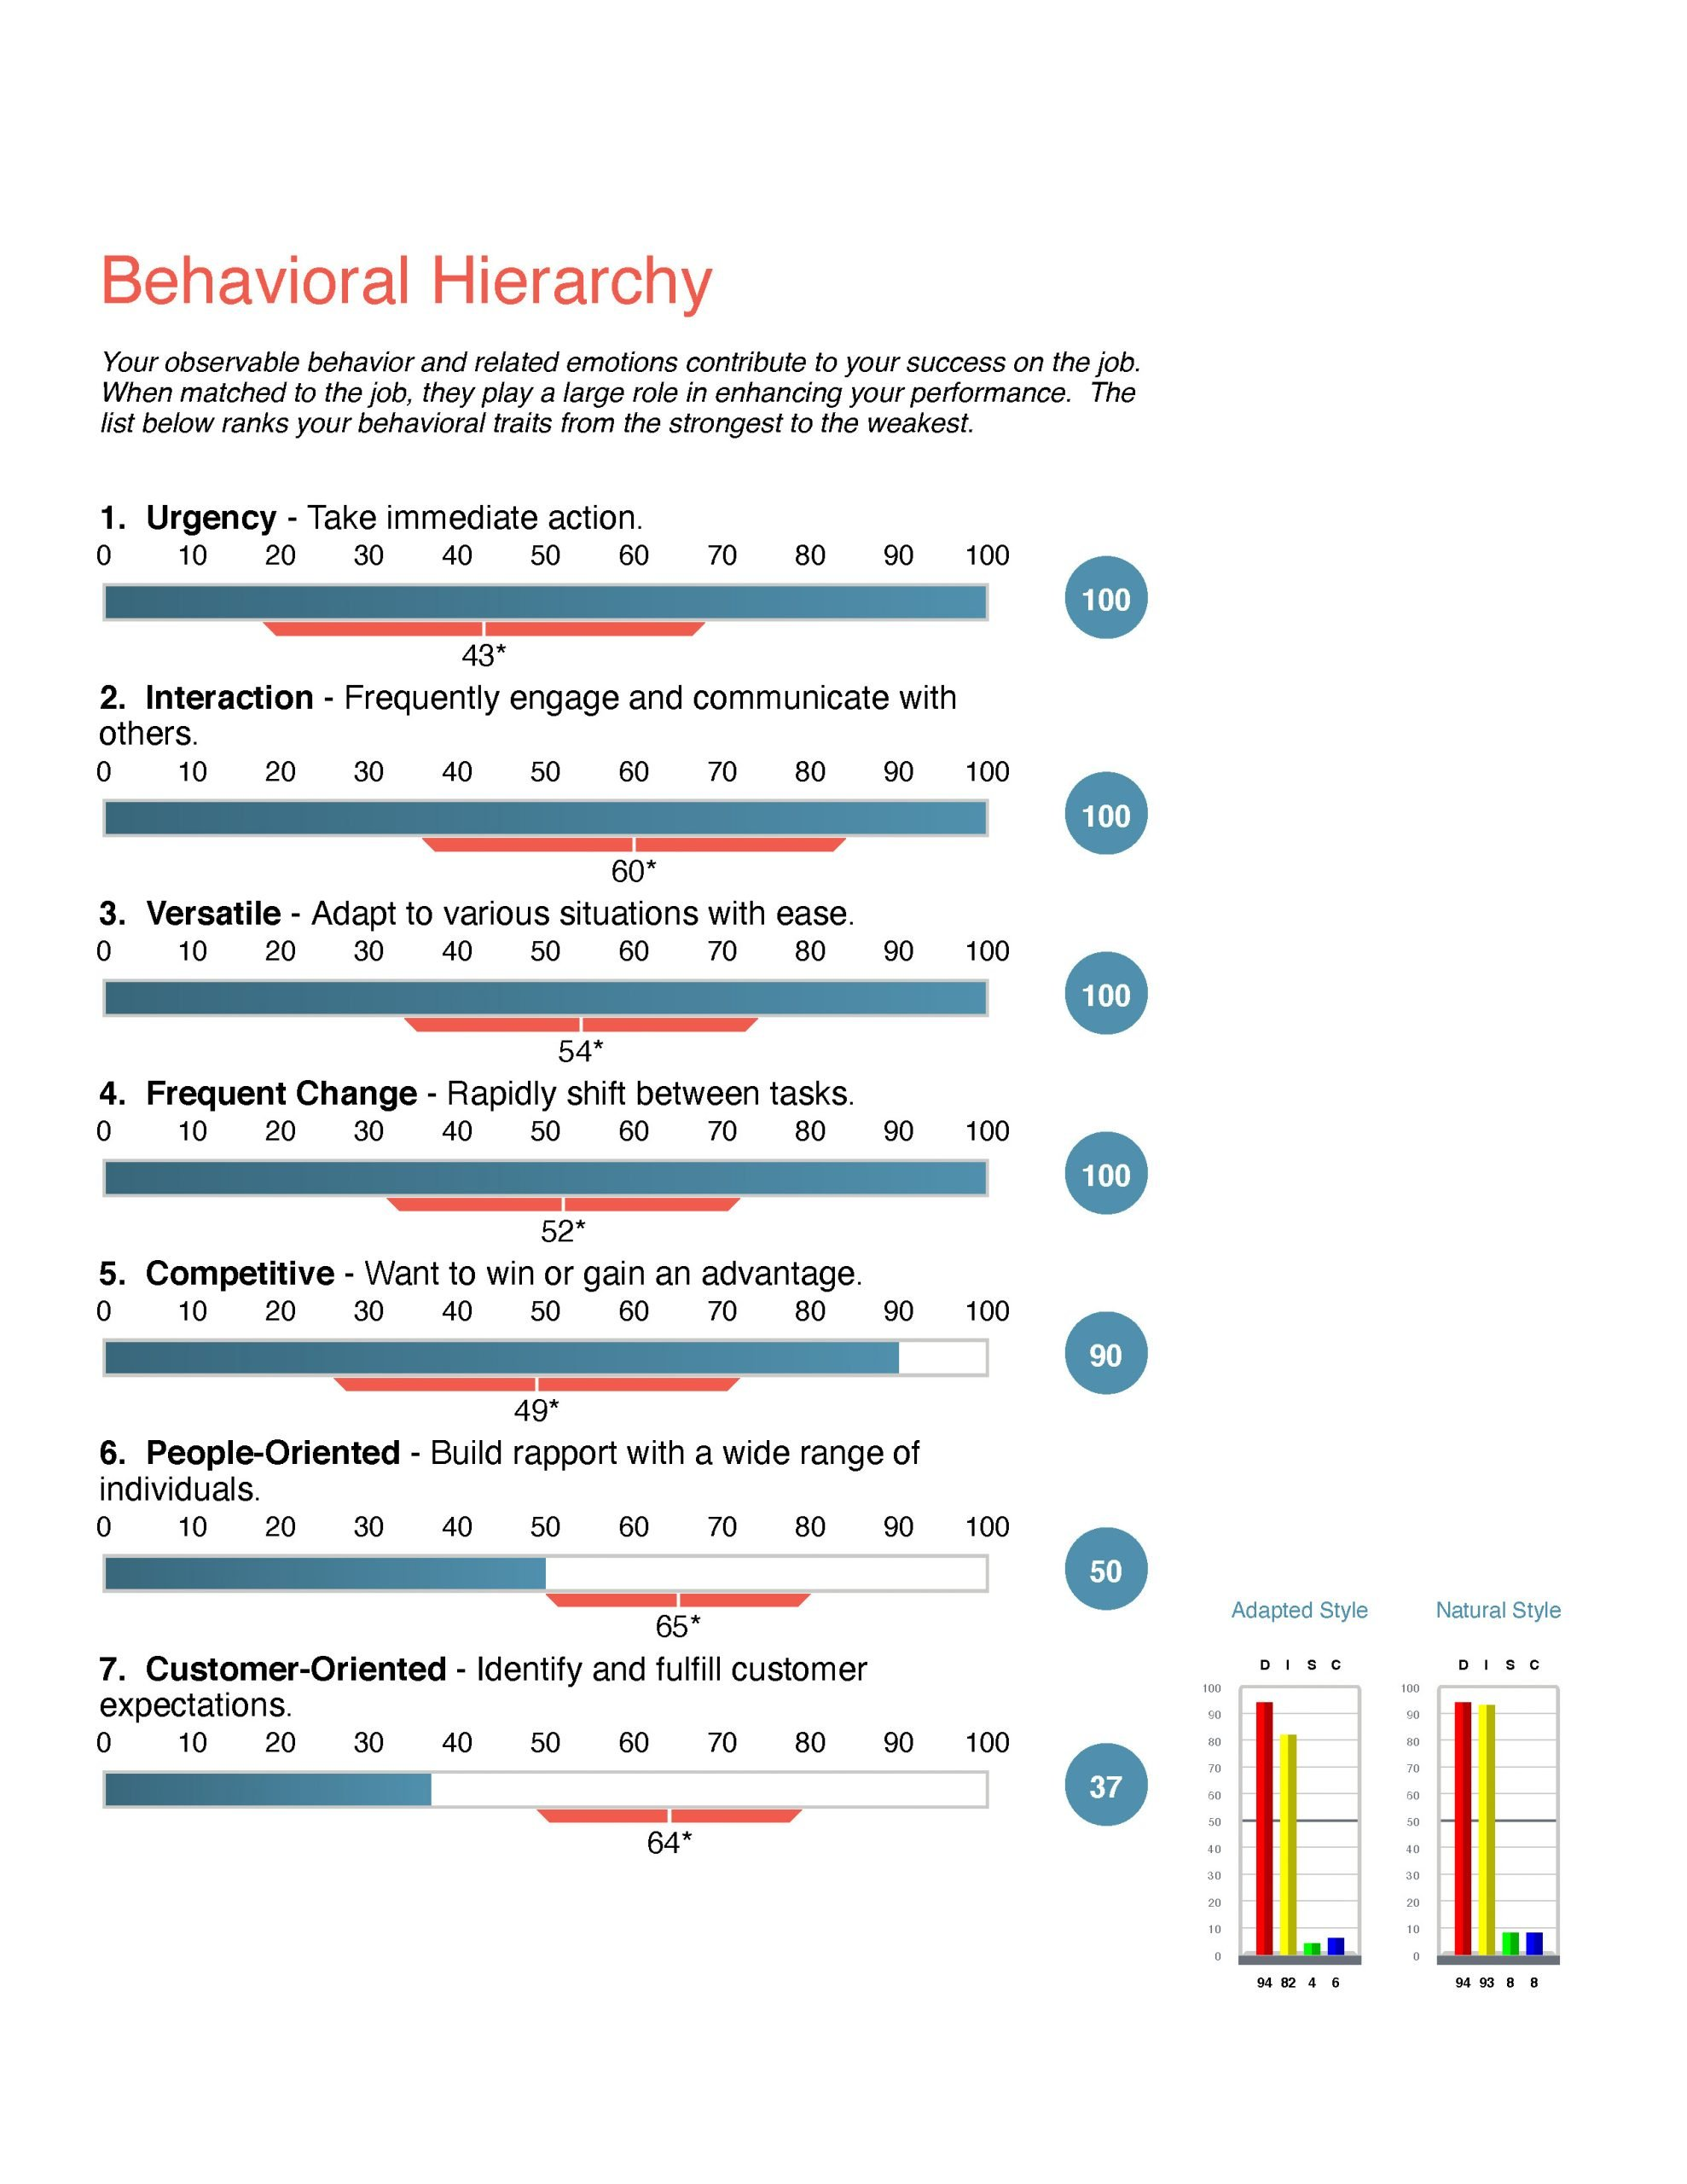 Improve communication skills: Image of behavioral traits from strongest to weakest